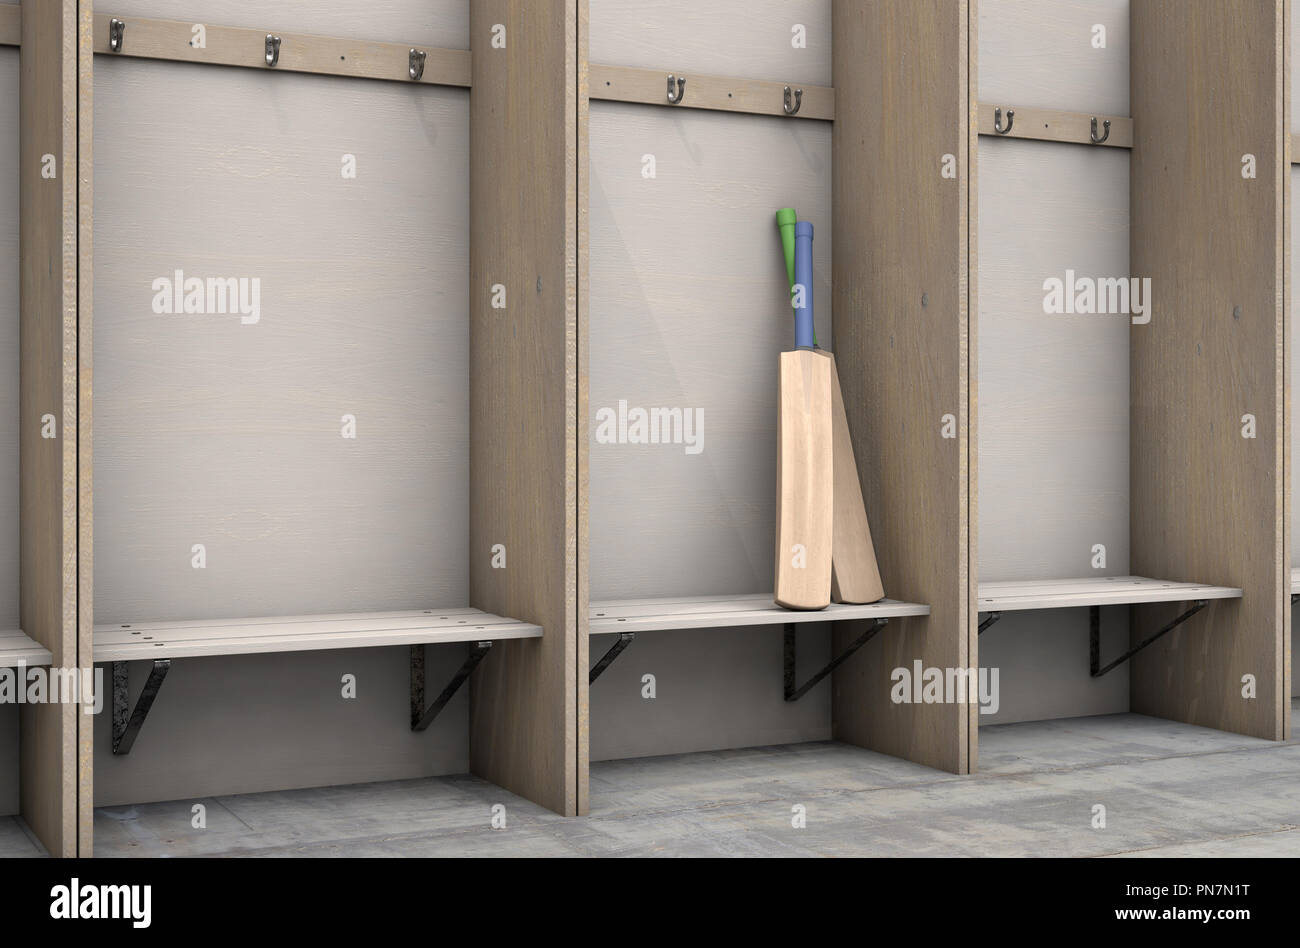 Awesome Two Cricket Bats In A Wooden Cubicle With A Bench And Beatyapartments Chair Design Images Beatyapartmentscom